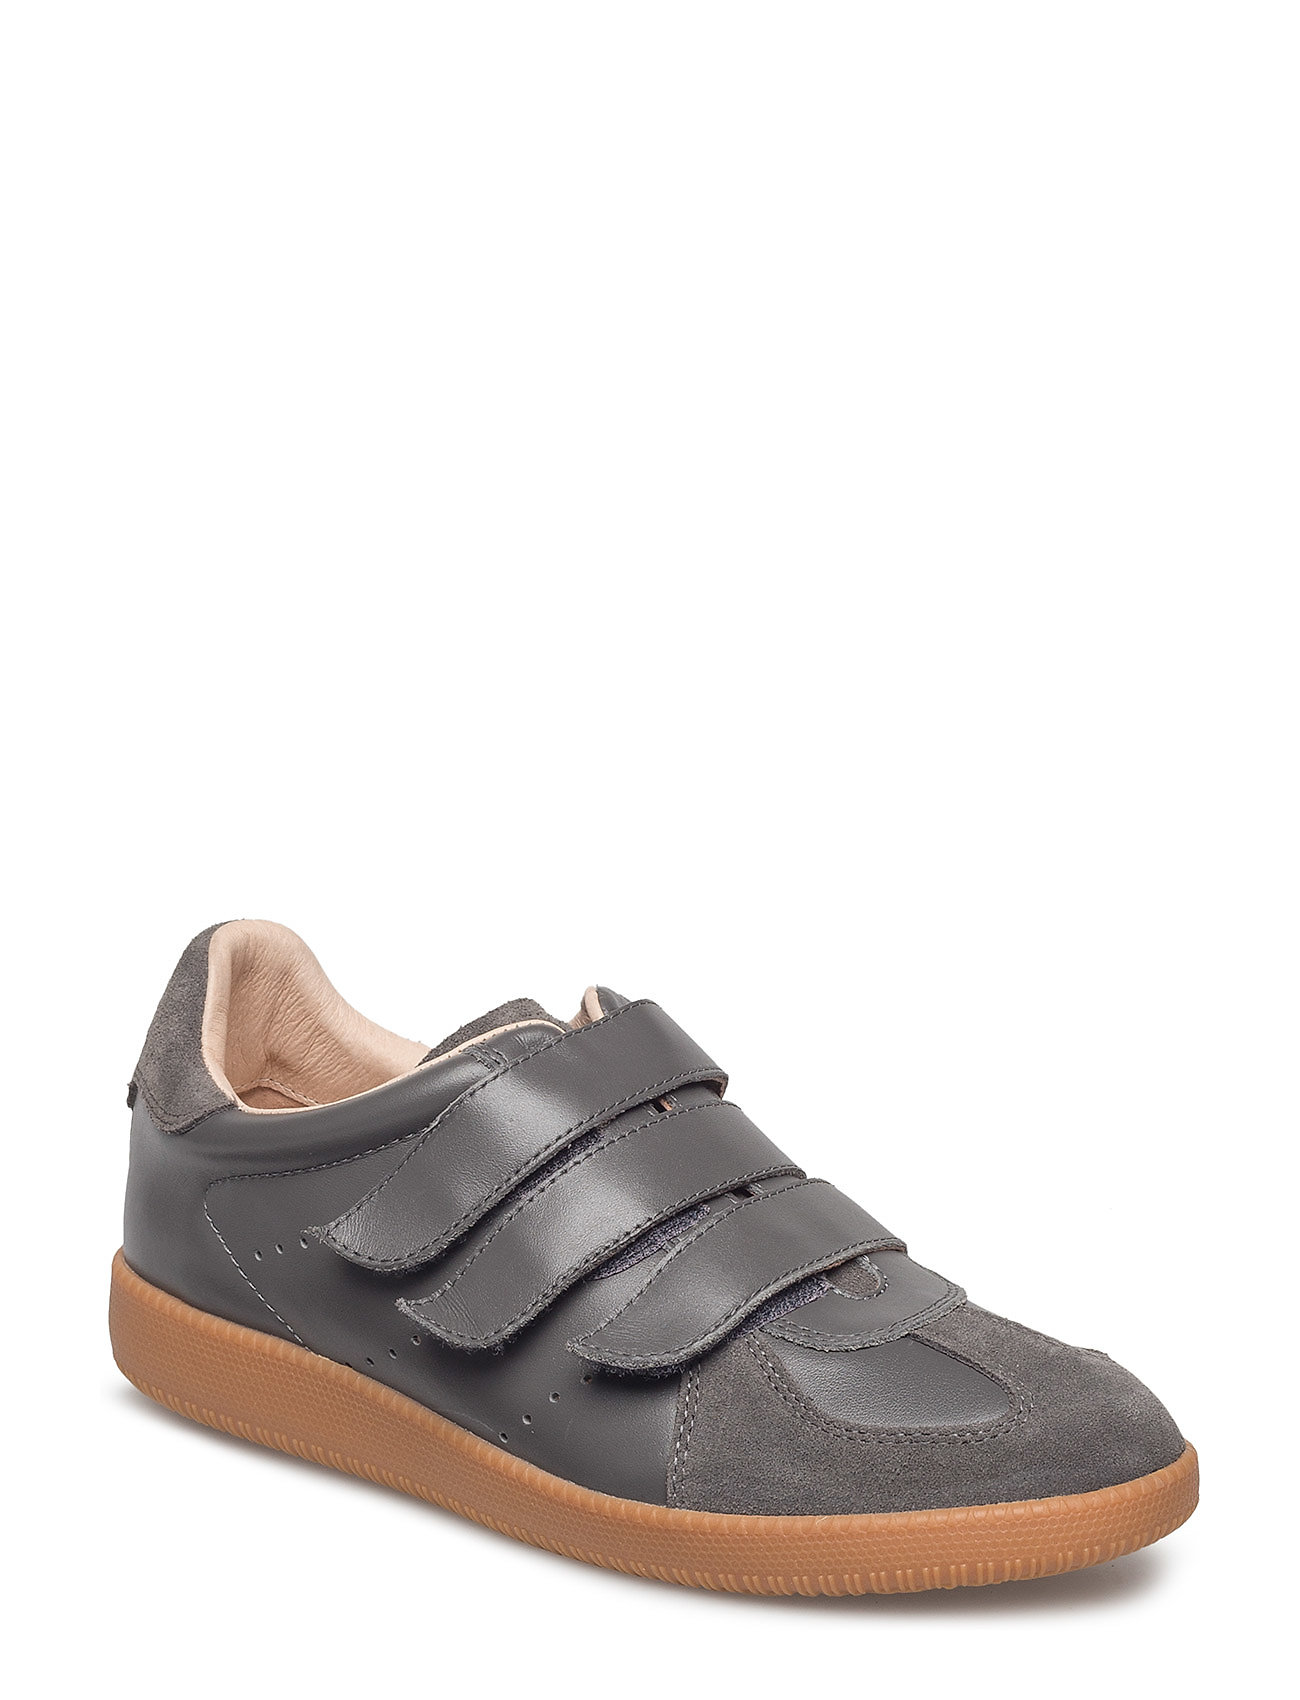 Image of Li Velcro Low-top Sneakers Grå Shoe The Bear (3452122565)